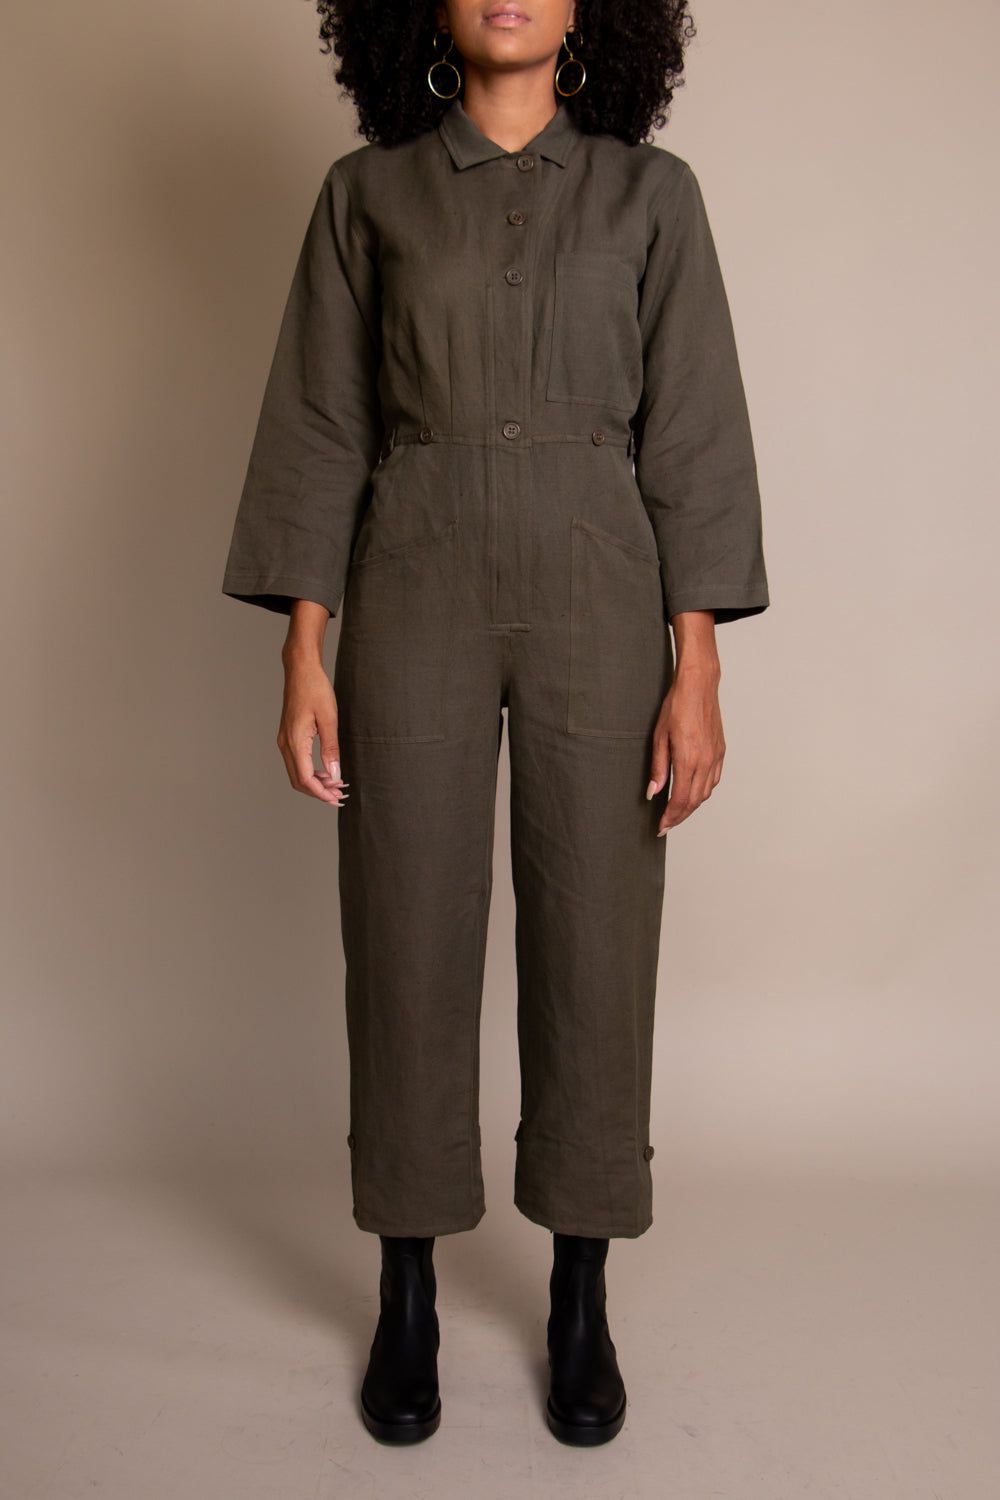 Ares Jumpsuit in Moss